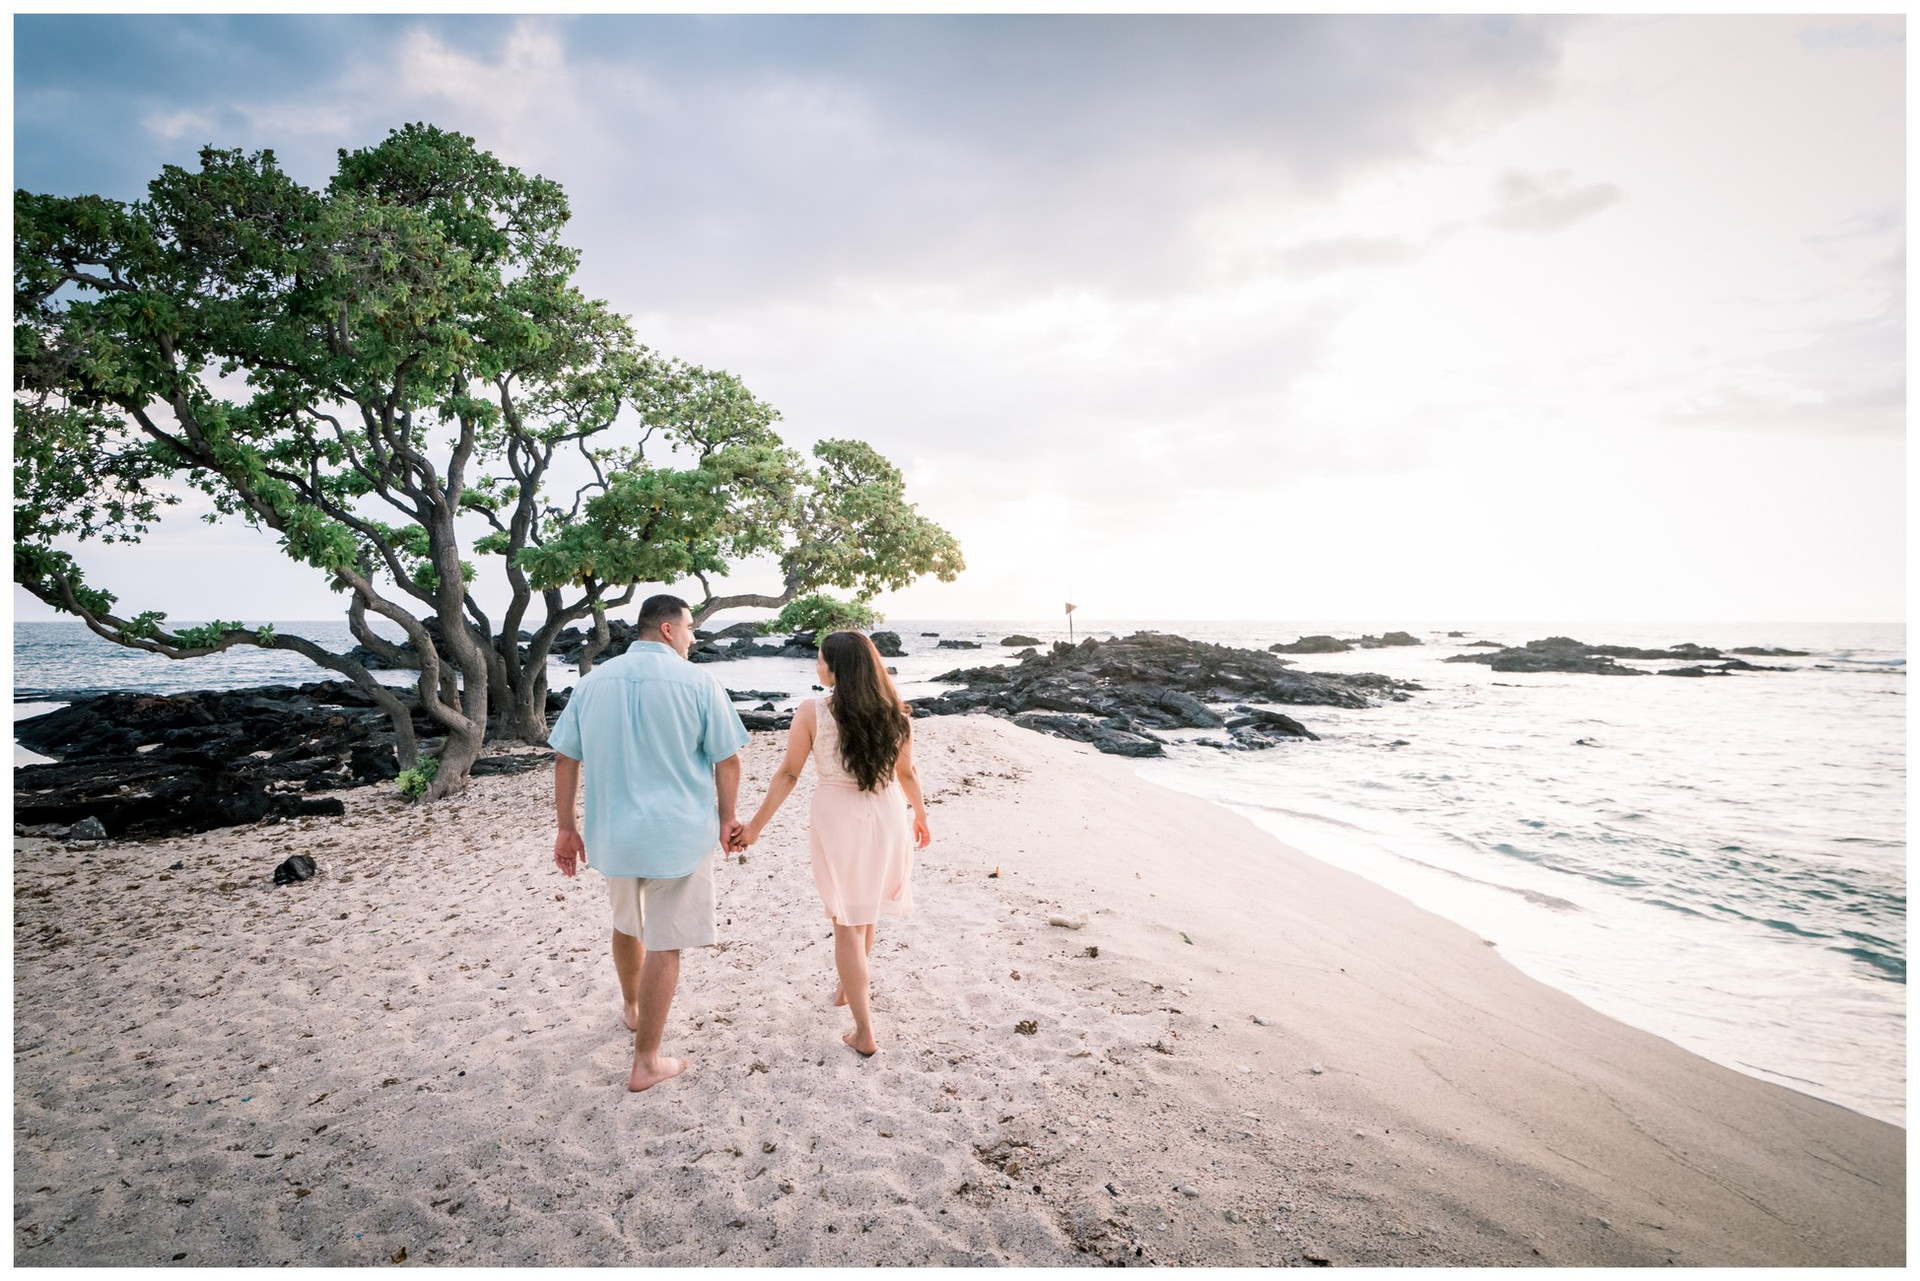 Hawaii Engagement Photographers 14.jpg